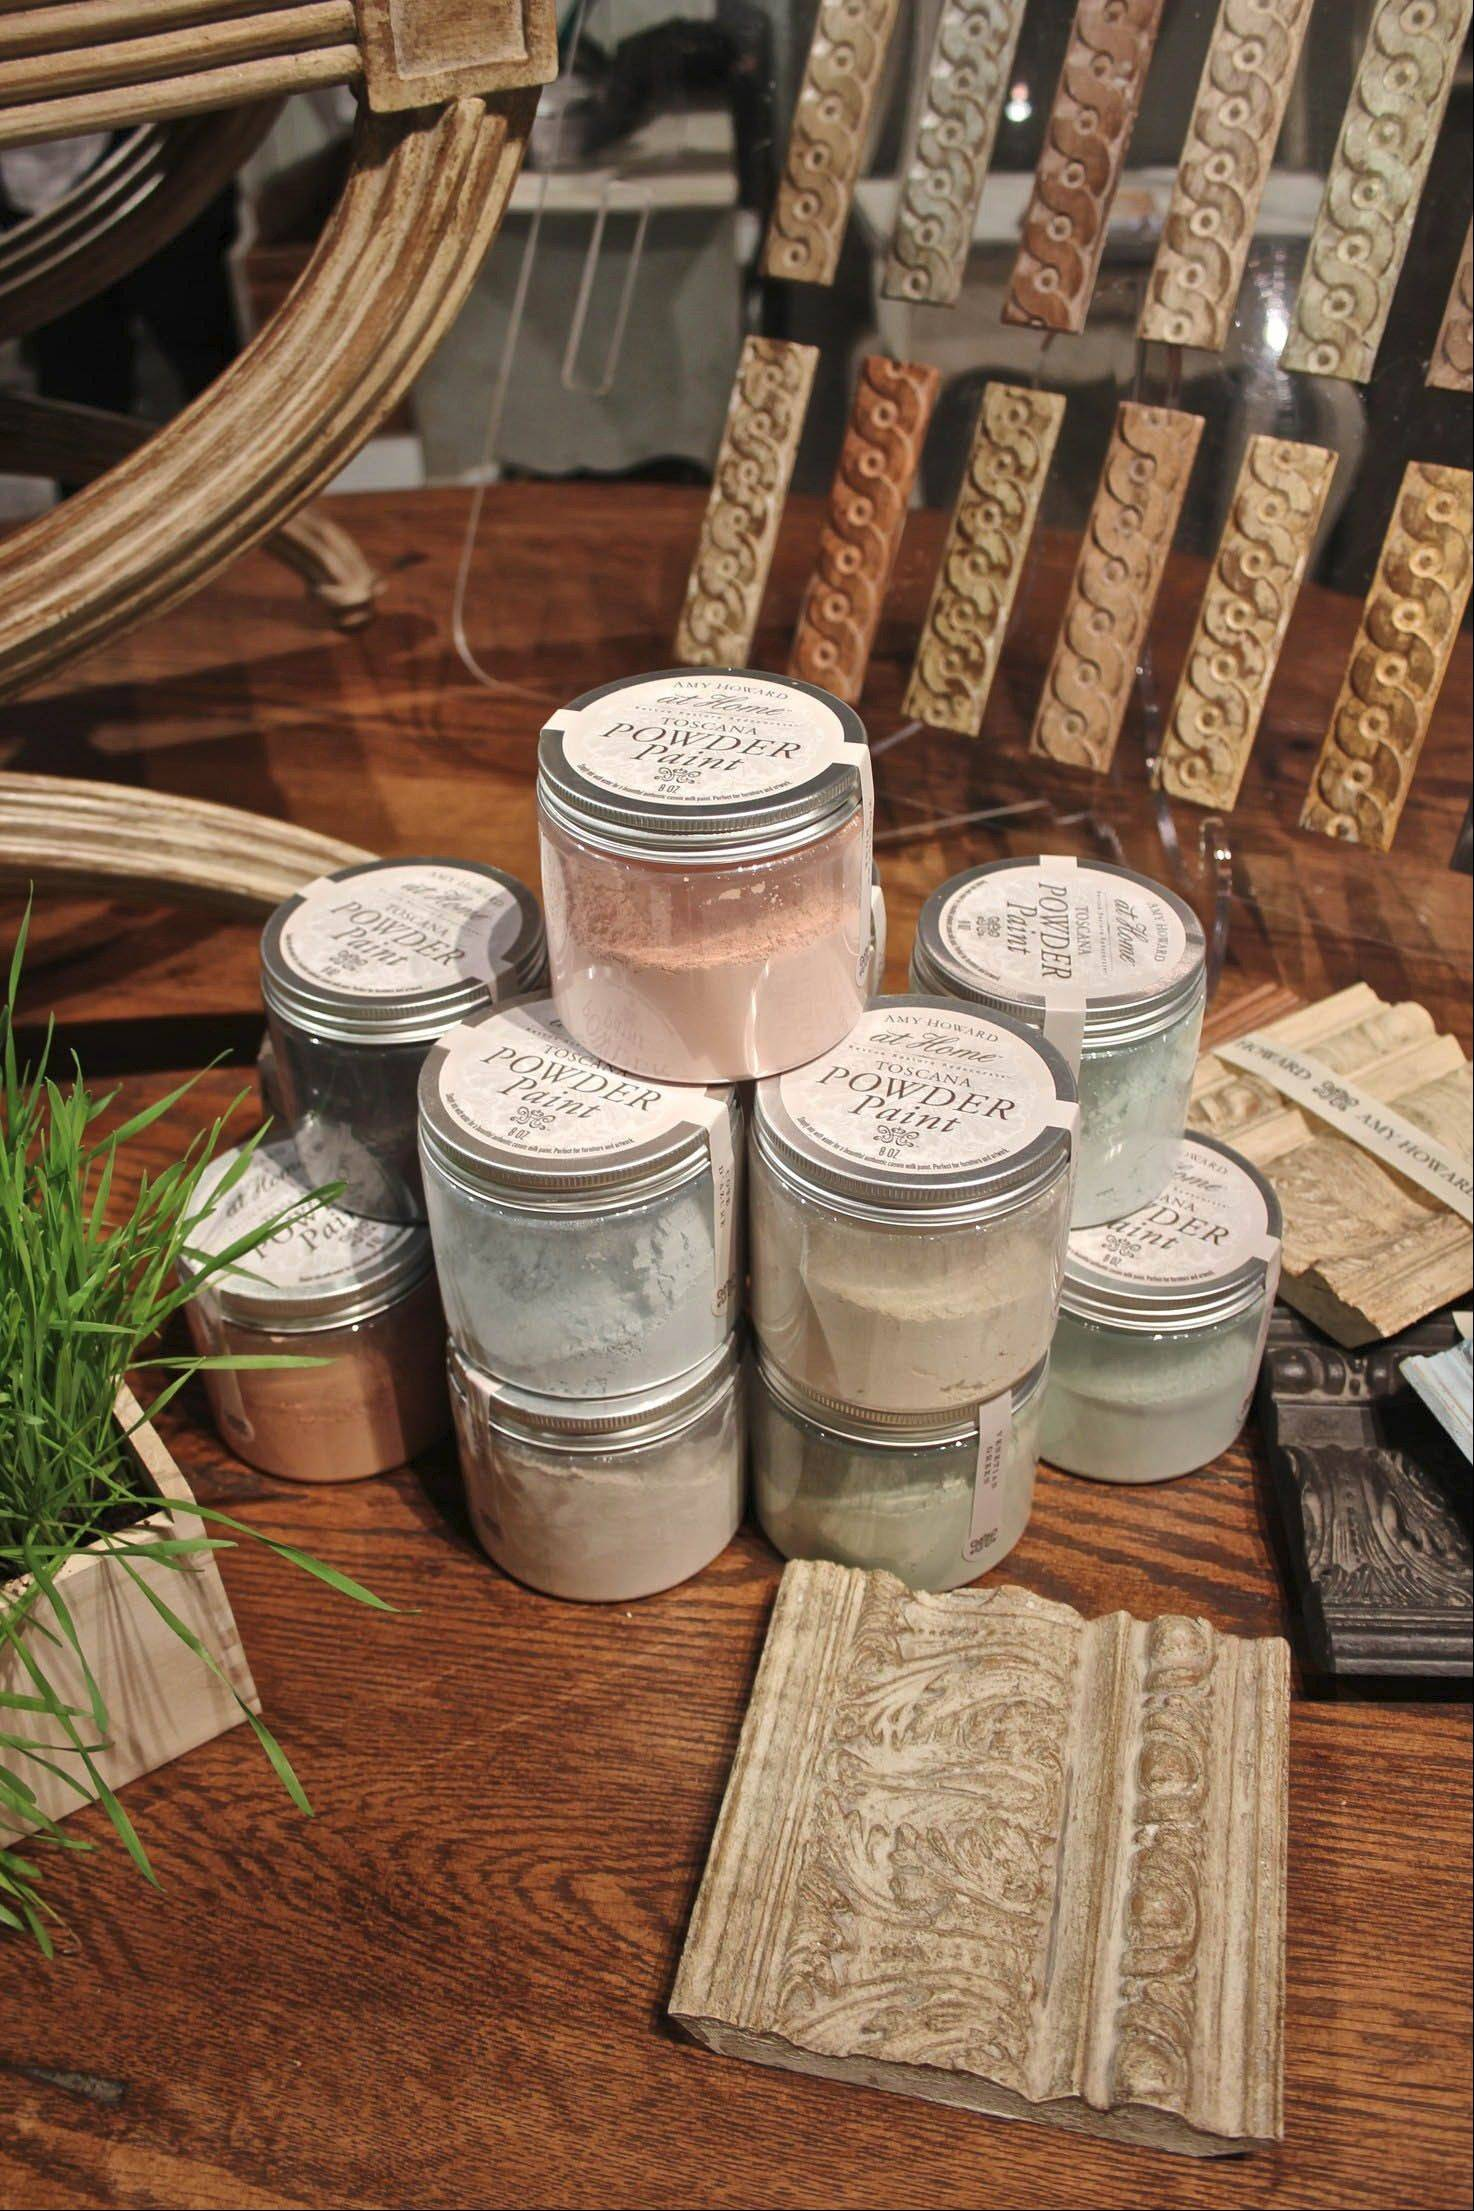 Furniture designer Amy Howard has a new line of powder paints to refinish old furnishings.